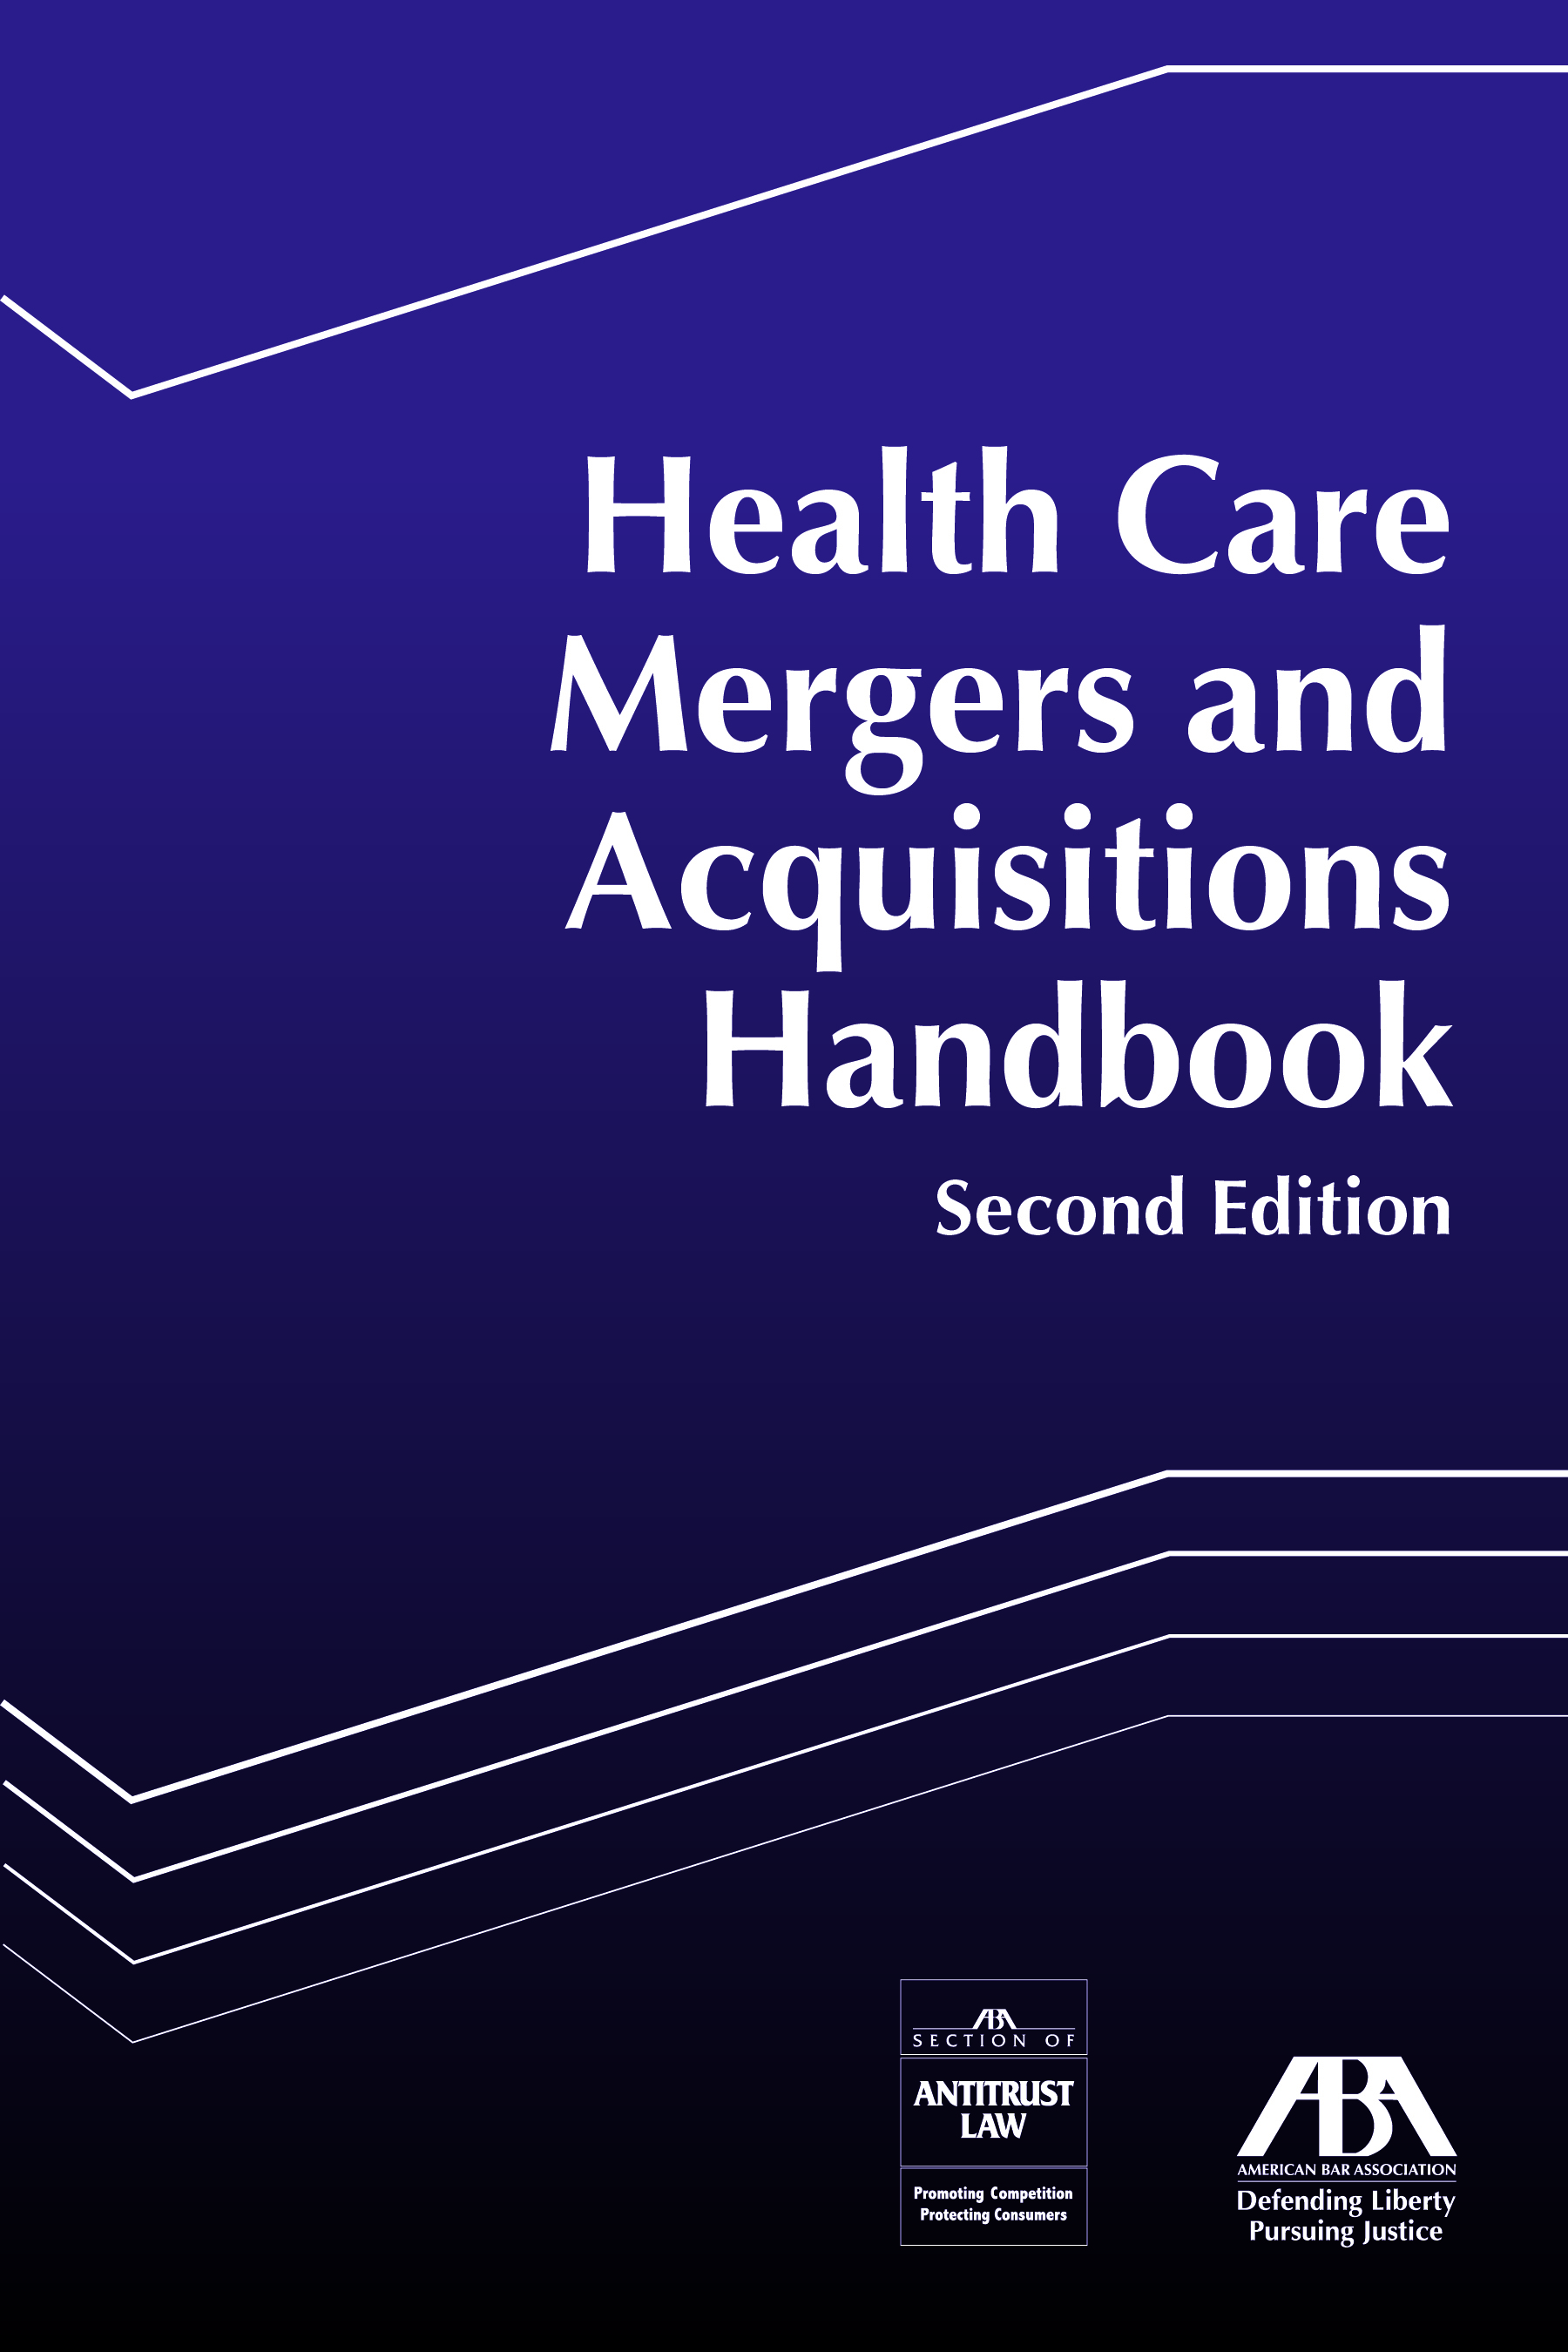 Health Care Mergers and Acquisitions Handbook, Second Edition